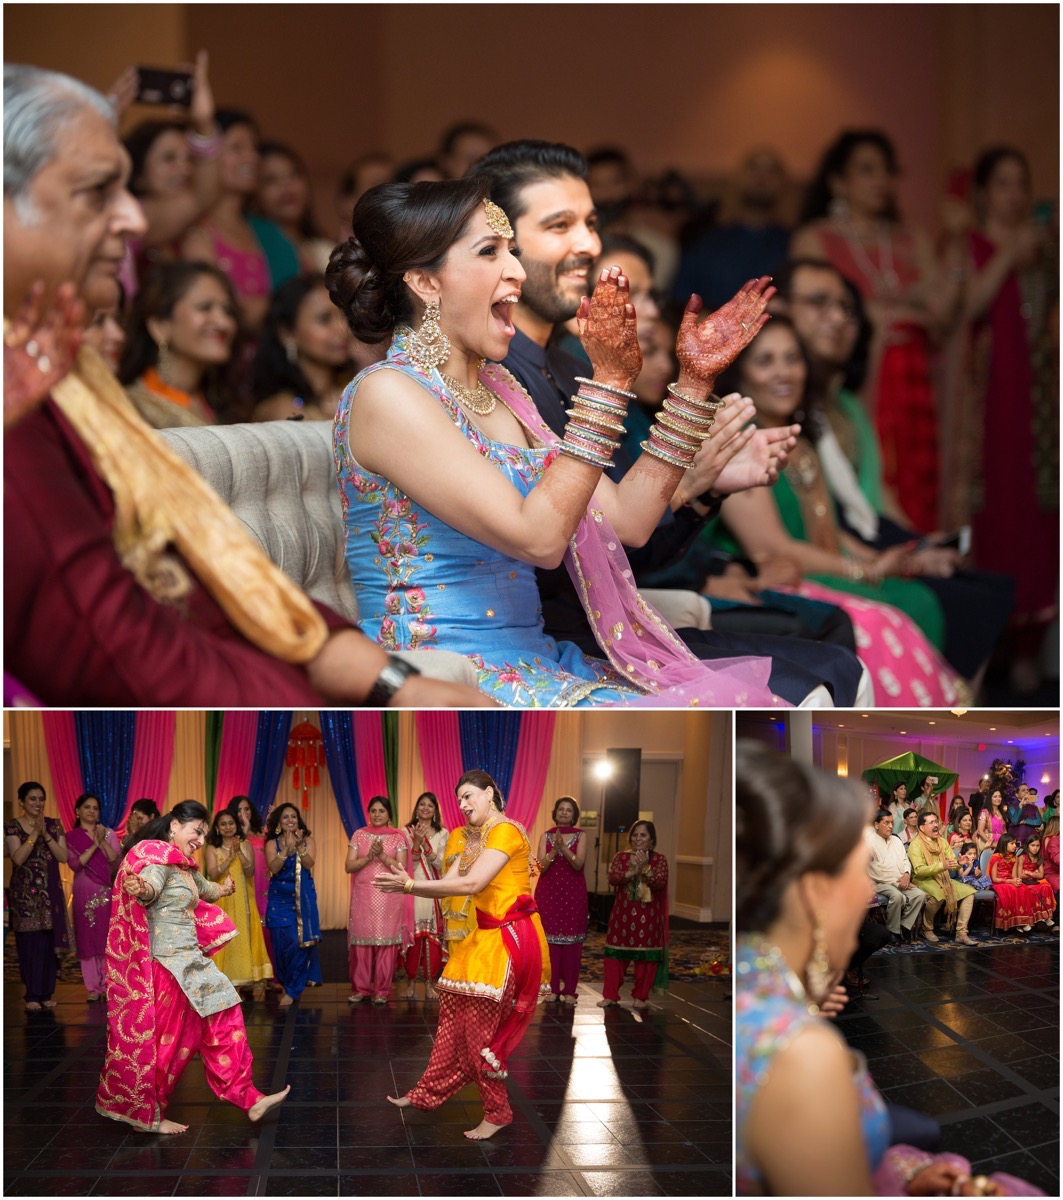 Le Cape Weddings - South Asian Wedding in Illinois - Tanvi and Anshul -4104_LuxuryDestinationPhotographer.jpg